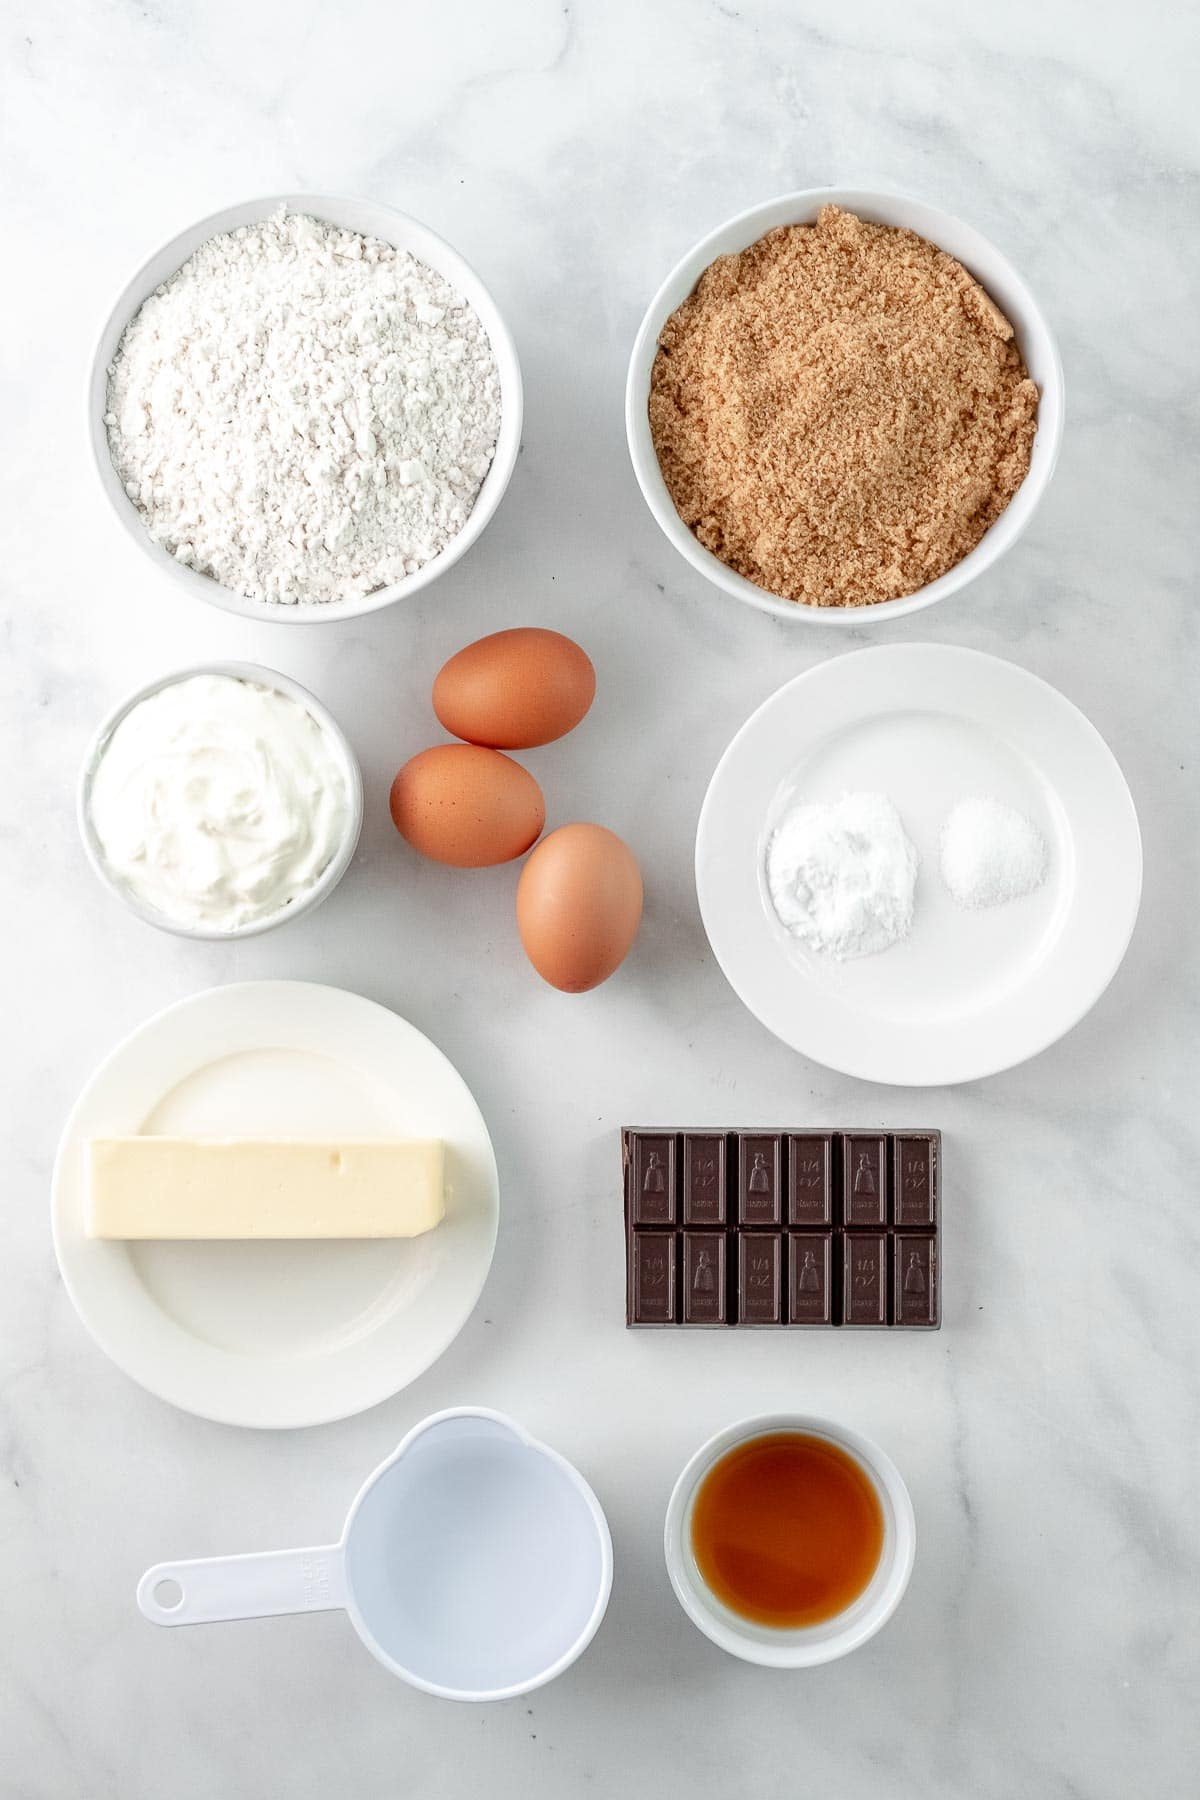 Ingredients for chocolate fudge cake in bowls on a white marble counter